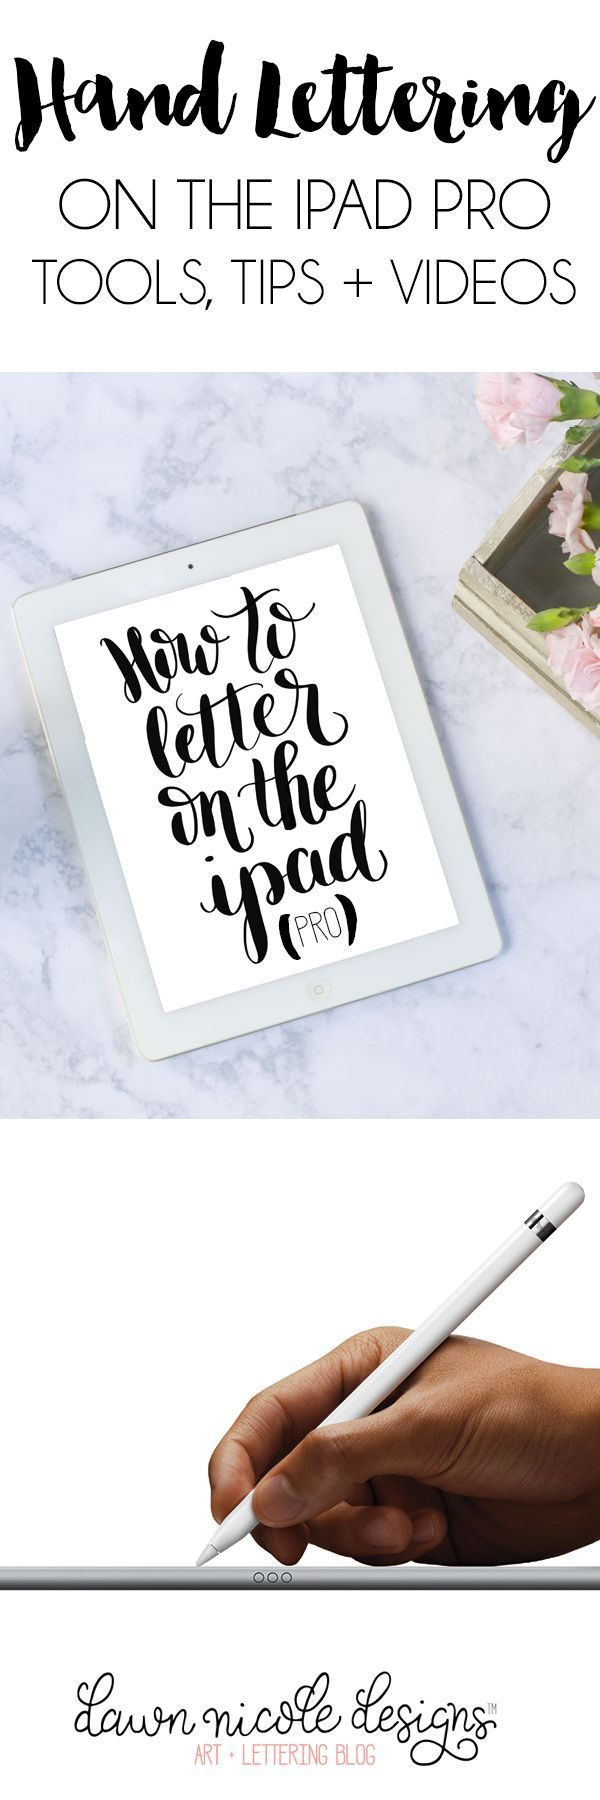 Hand Lettering with the iPad Pro + Apple Pencil. The basic tools, tips, tricks for lettering on the iPad Pro with the Apple Pencil! | dawnnicoledesigns...